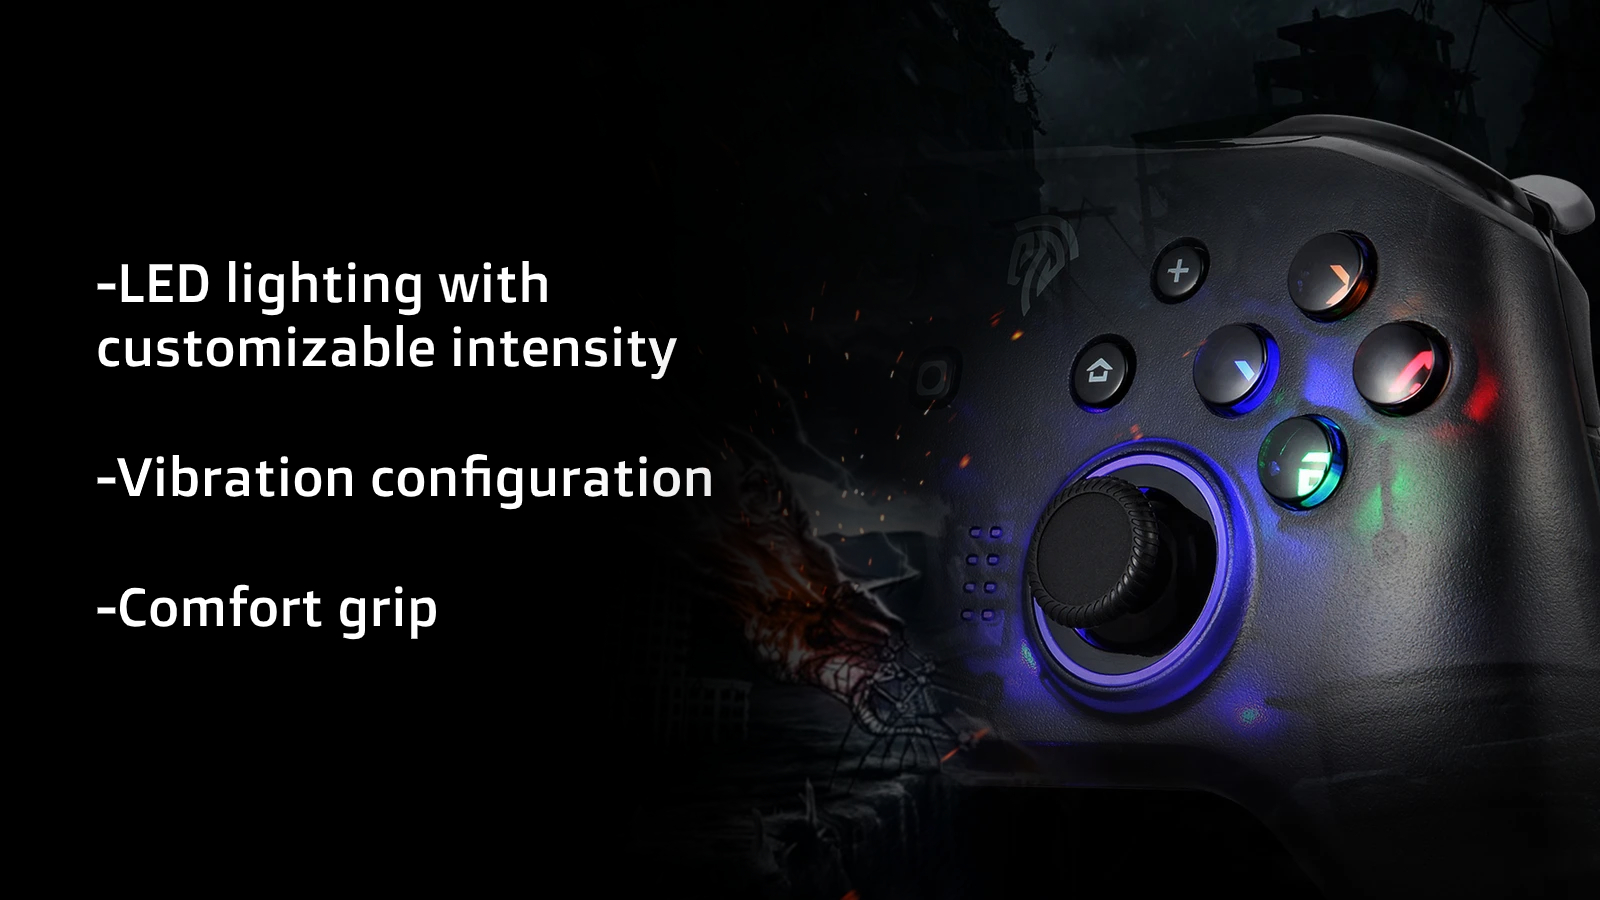 The EasySMX ESM 4108 wireless controller has incredible customization.